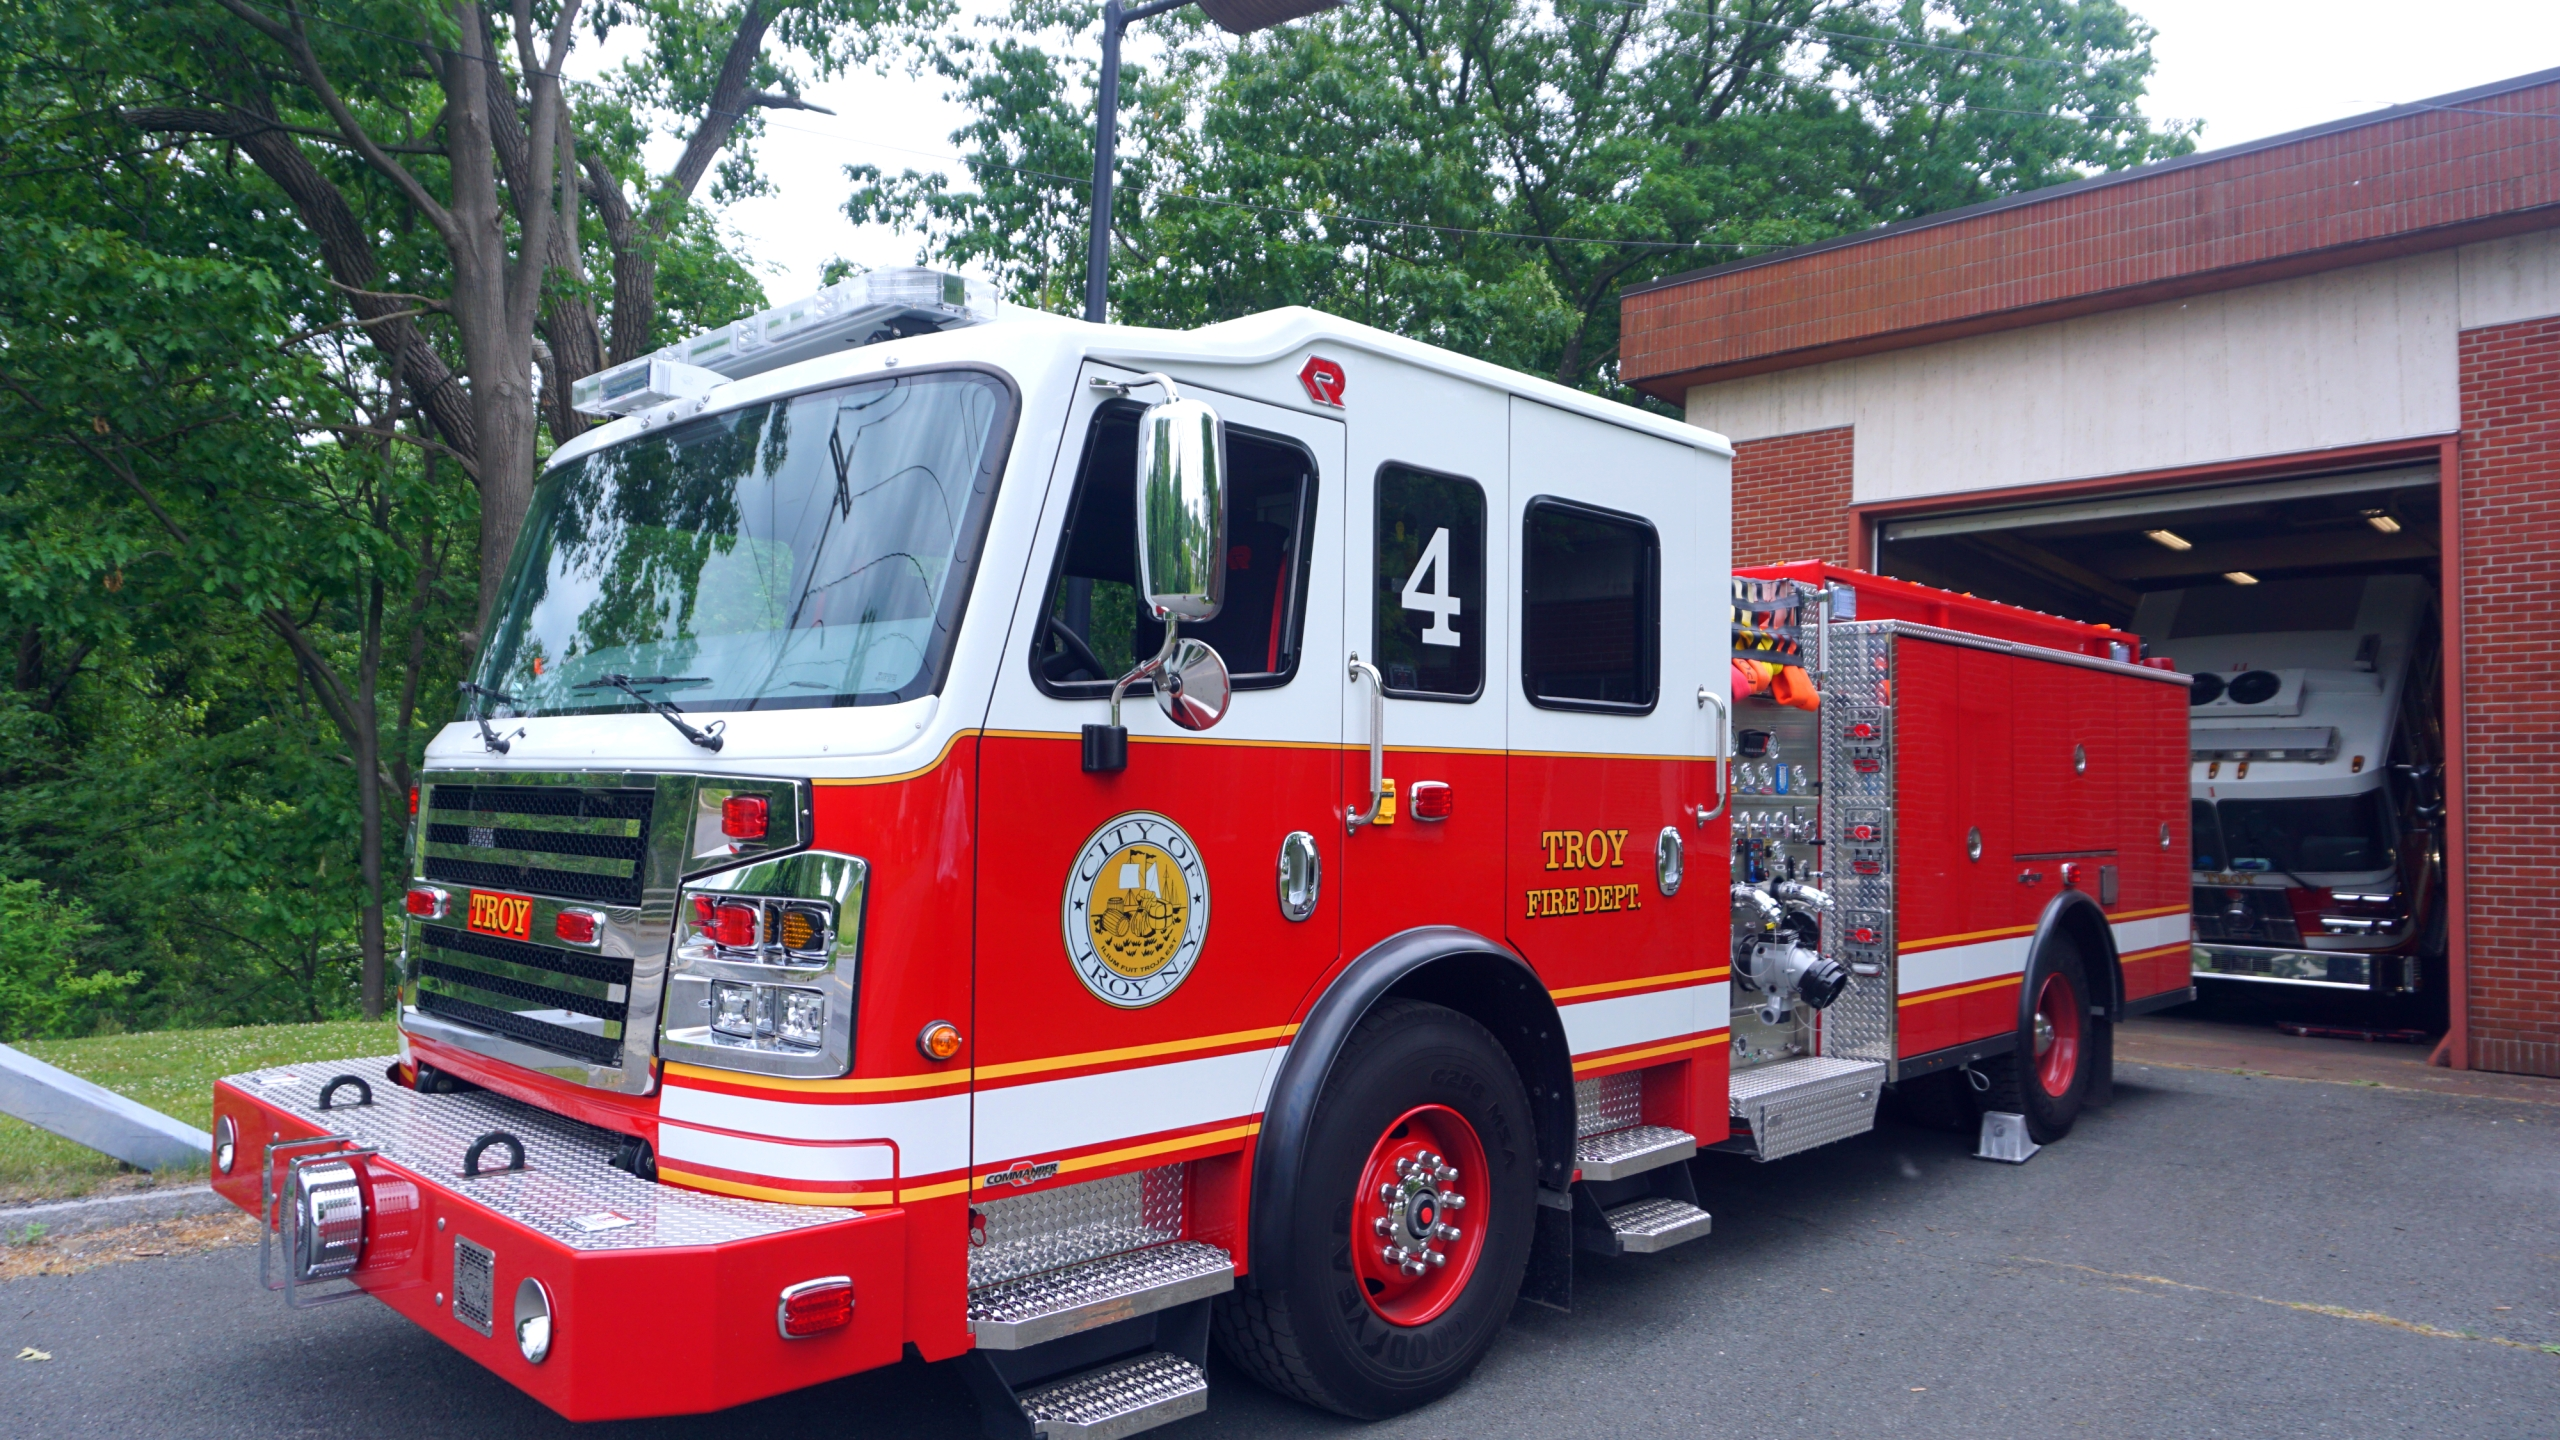 Troy's Fire Engine 4